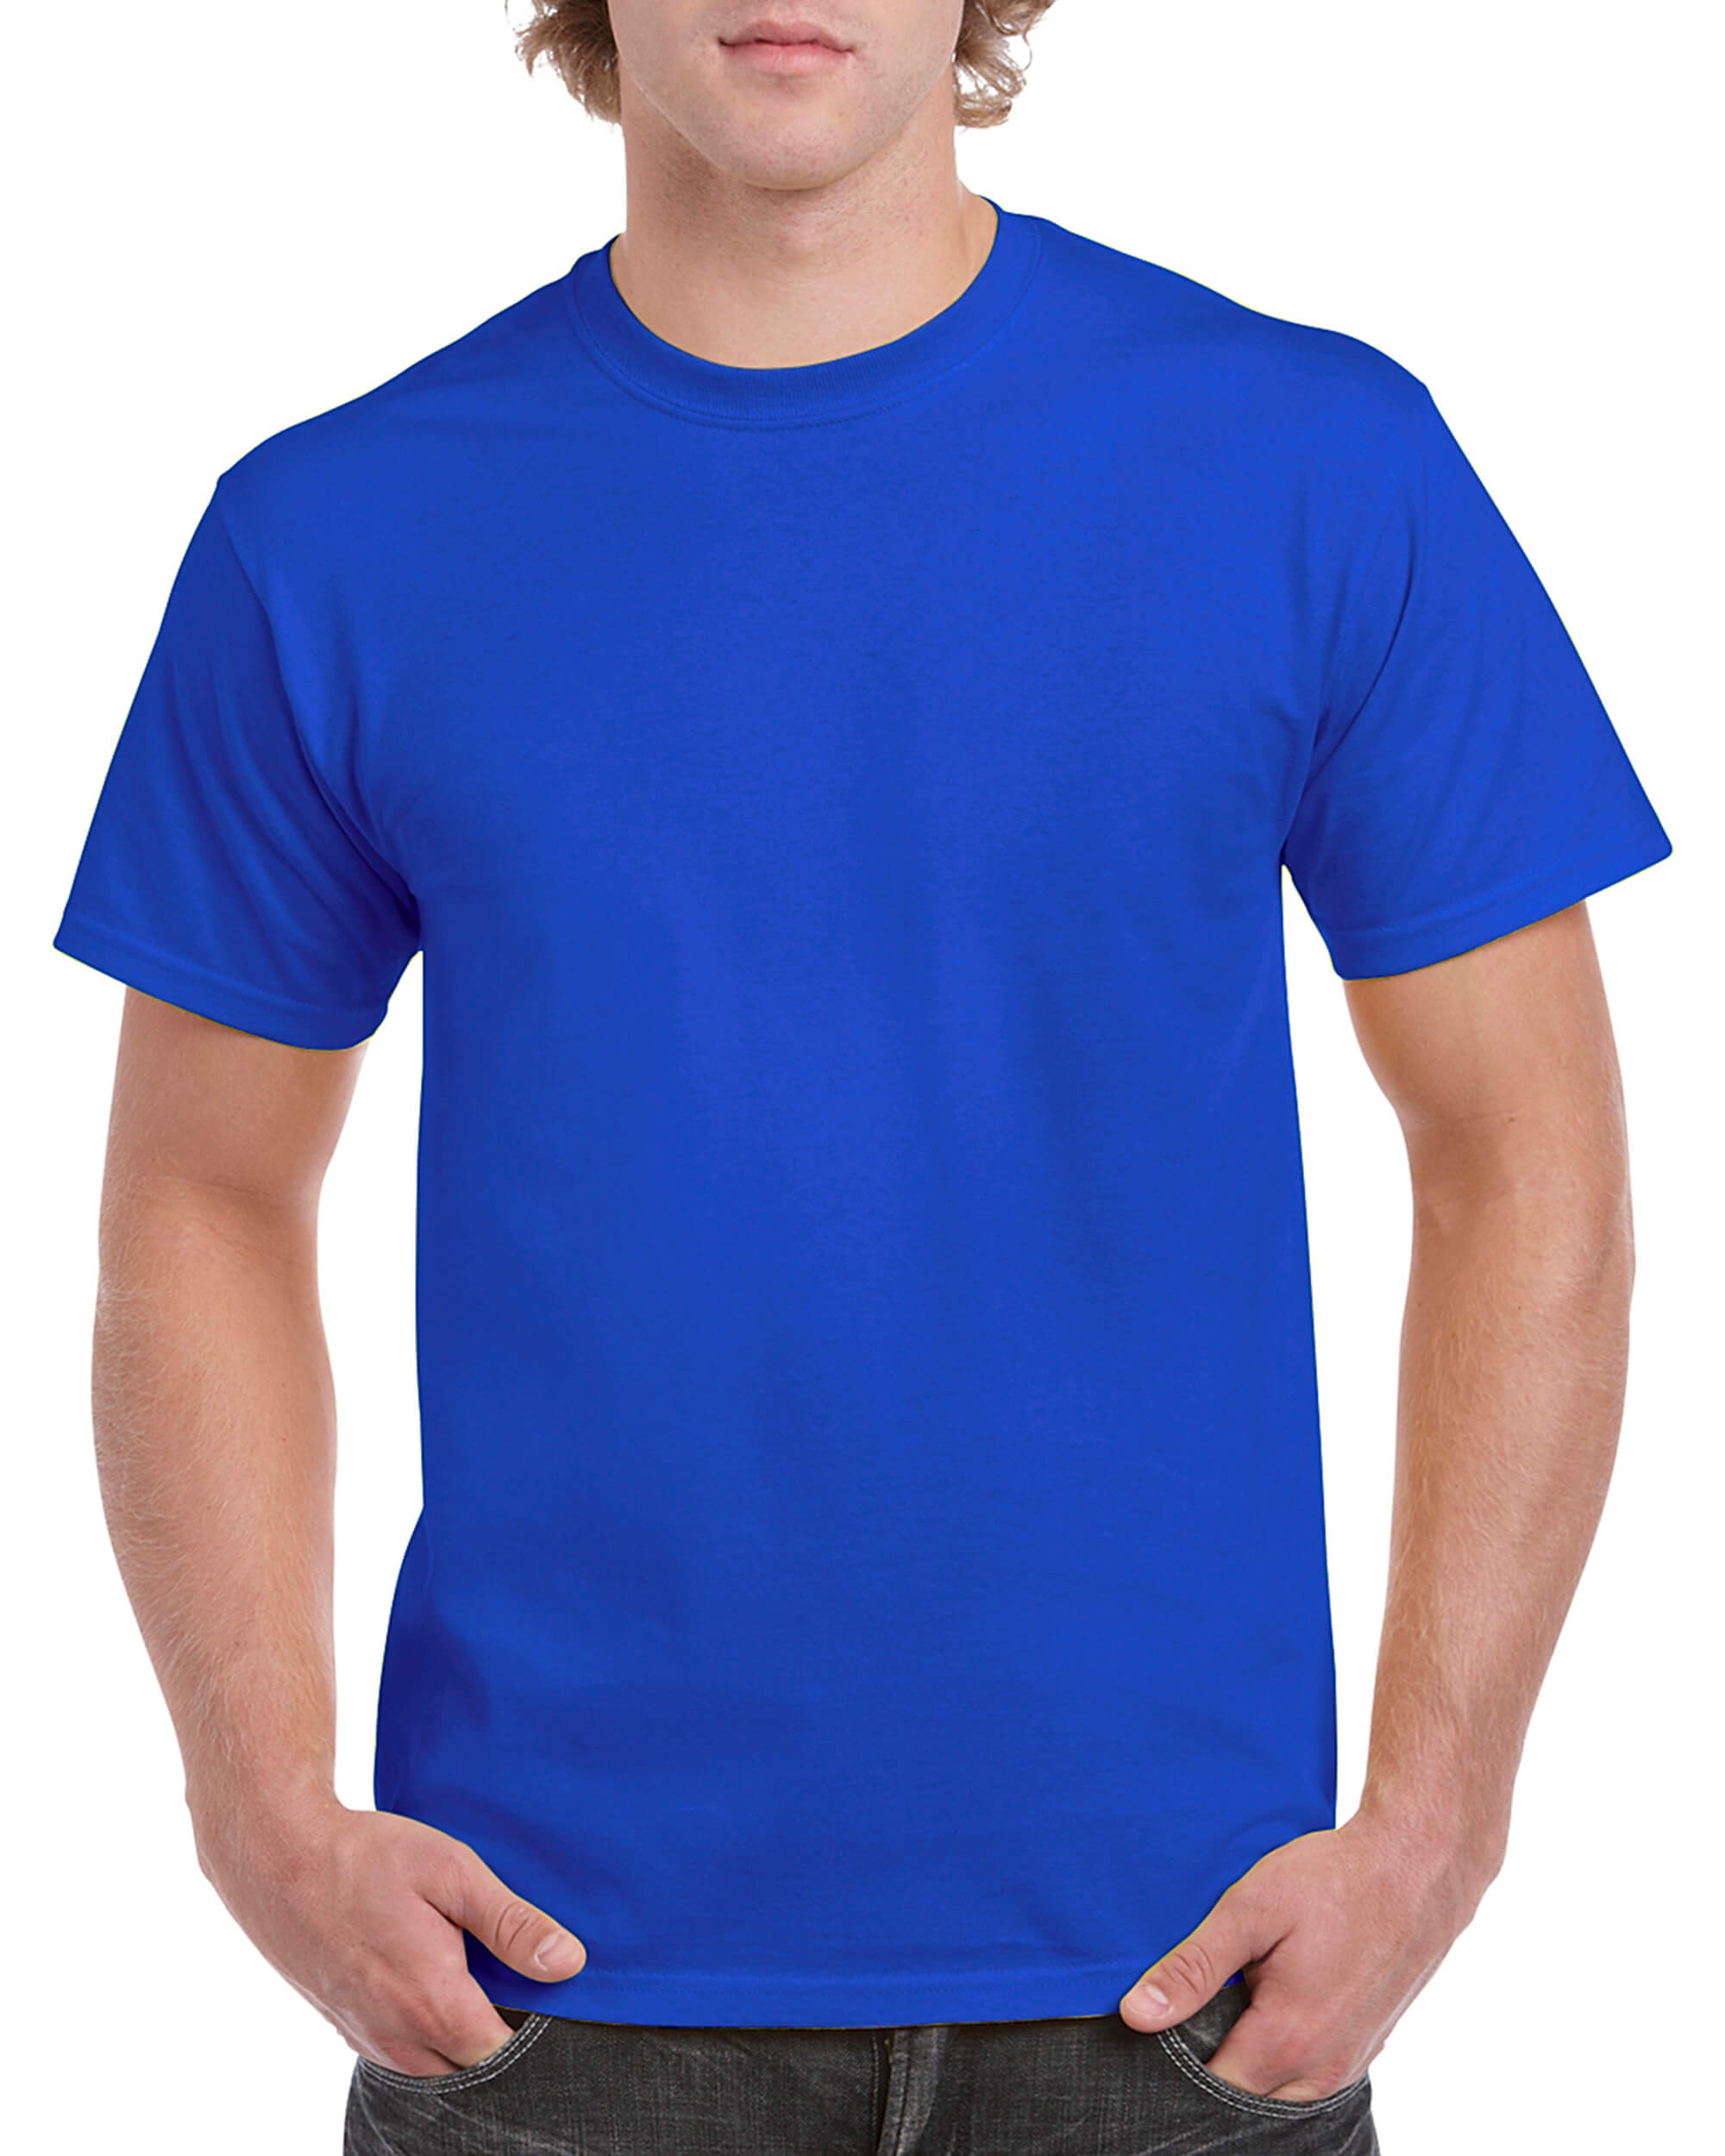 Download Google Image Result For Https Explosiontshirt Com Wp Content Uploads 2018 10 Men Neon Blue Tshirt Gildan Adul In 2020 Quality T Shirts Mens Tshirts Cotton Tee Shirts